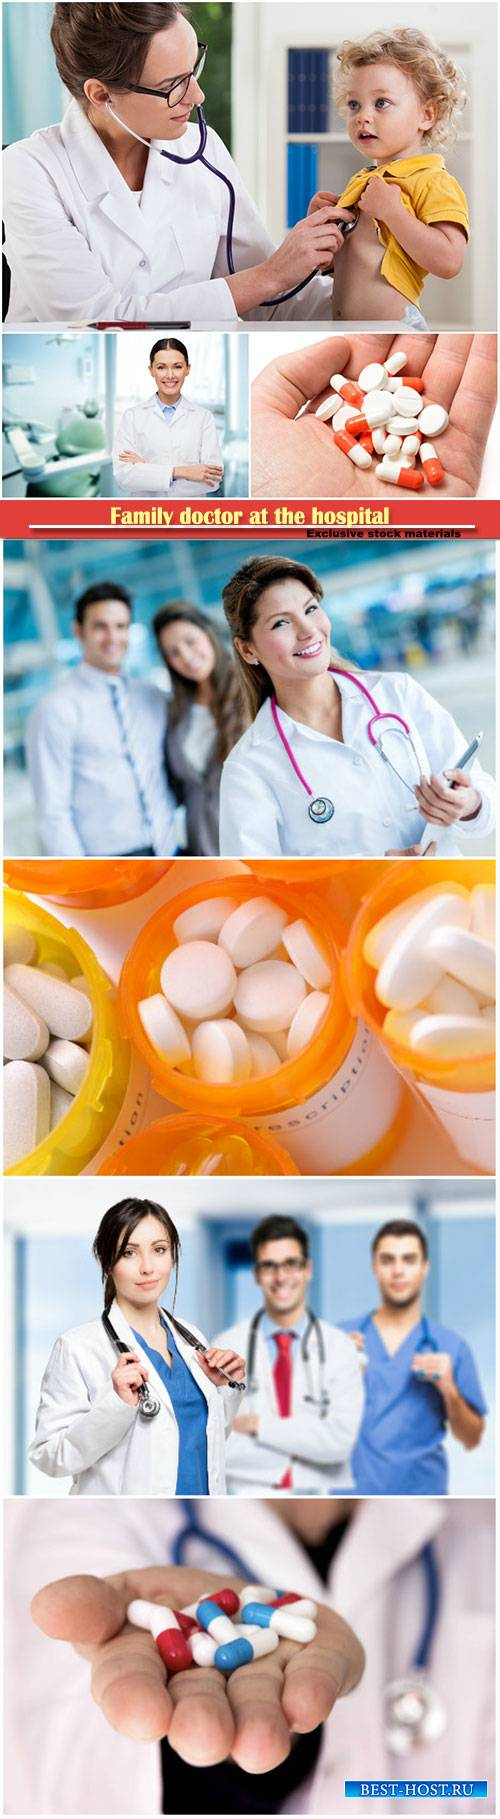 Family doctor at the hospital, pills close up